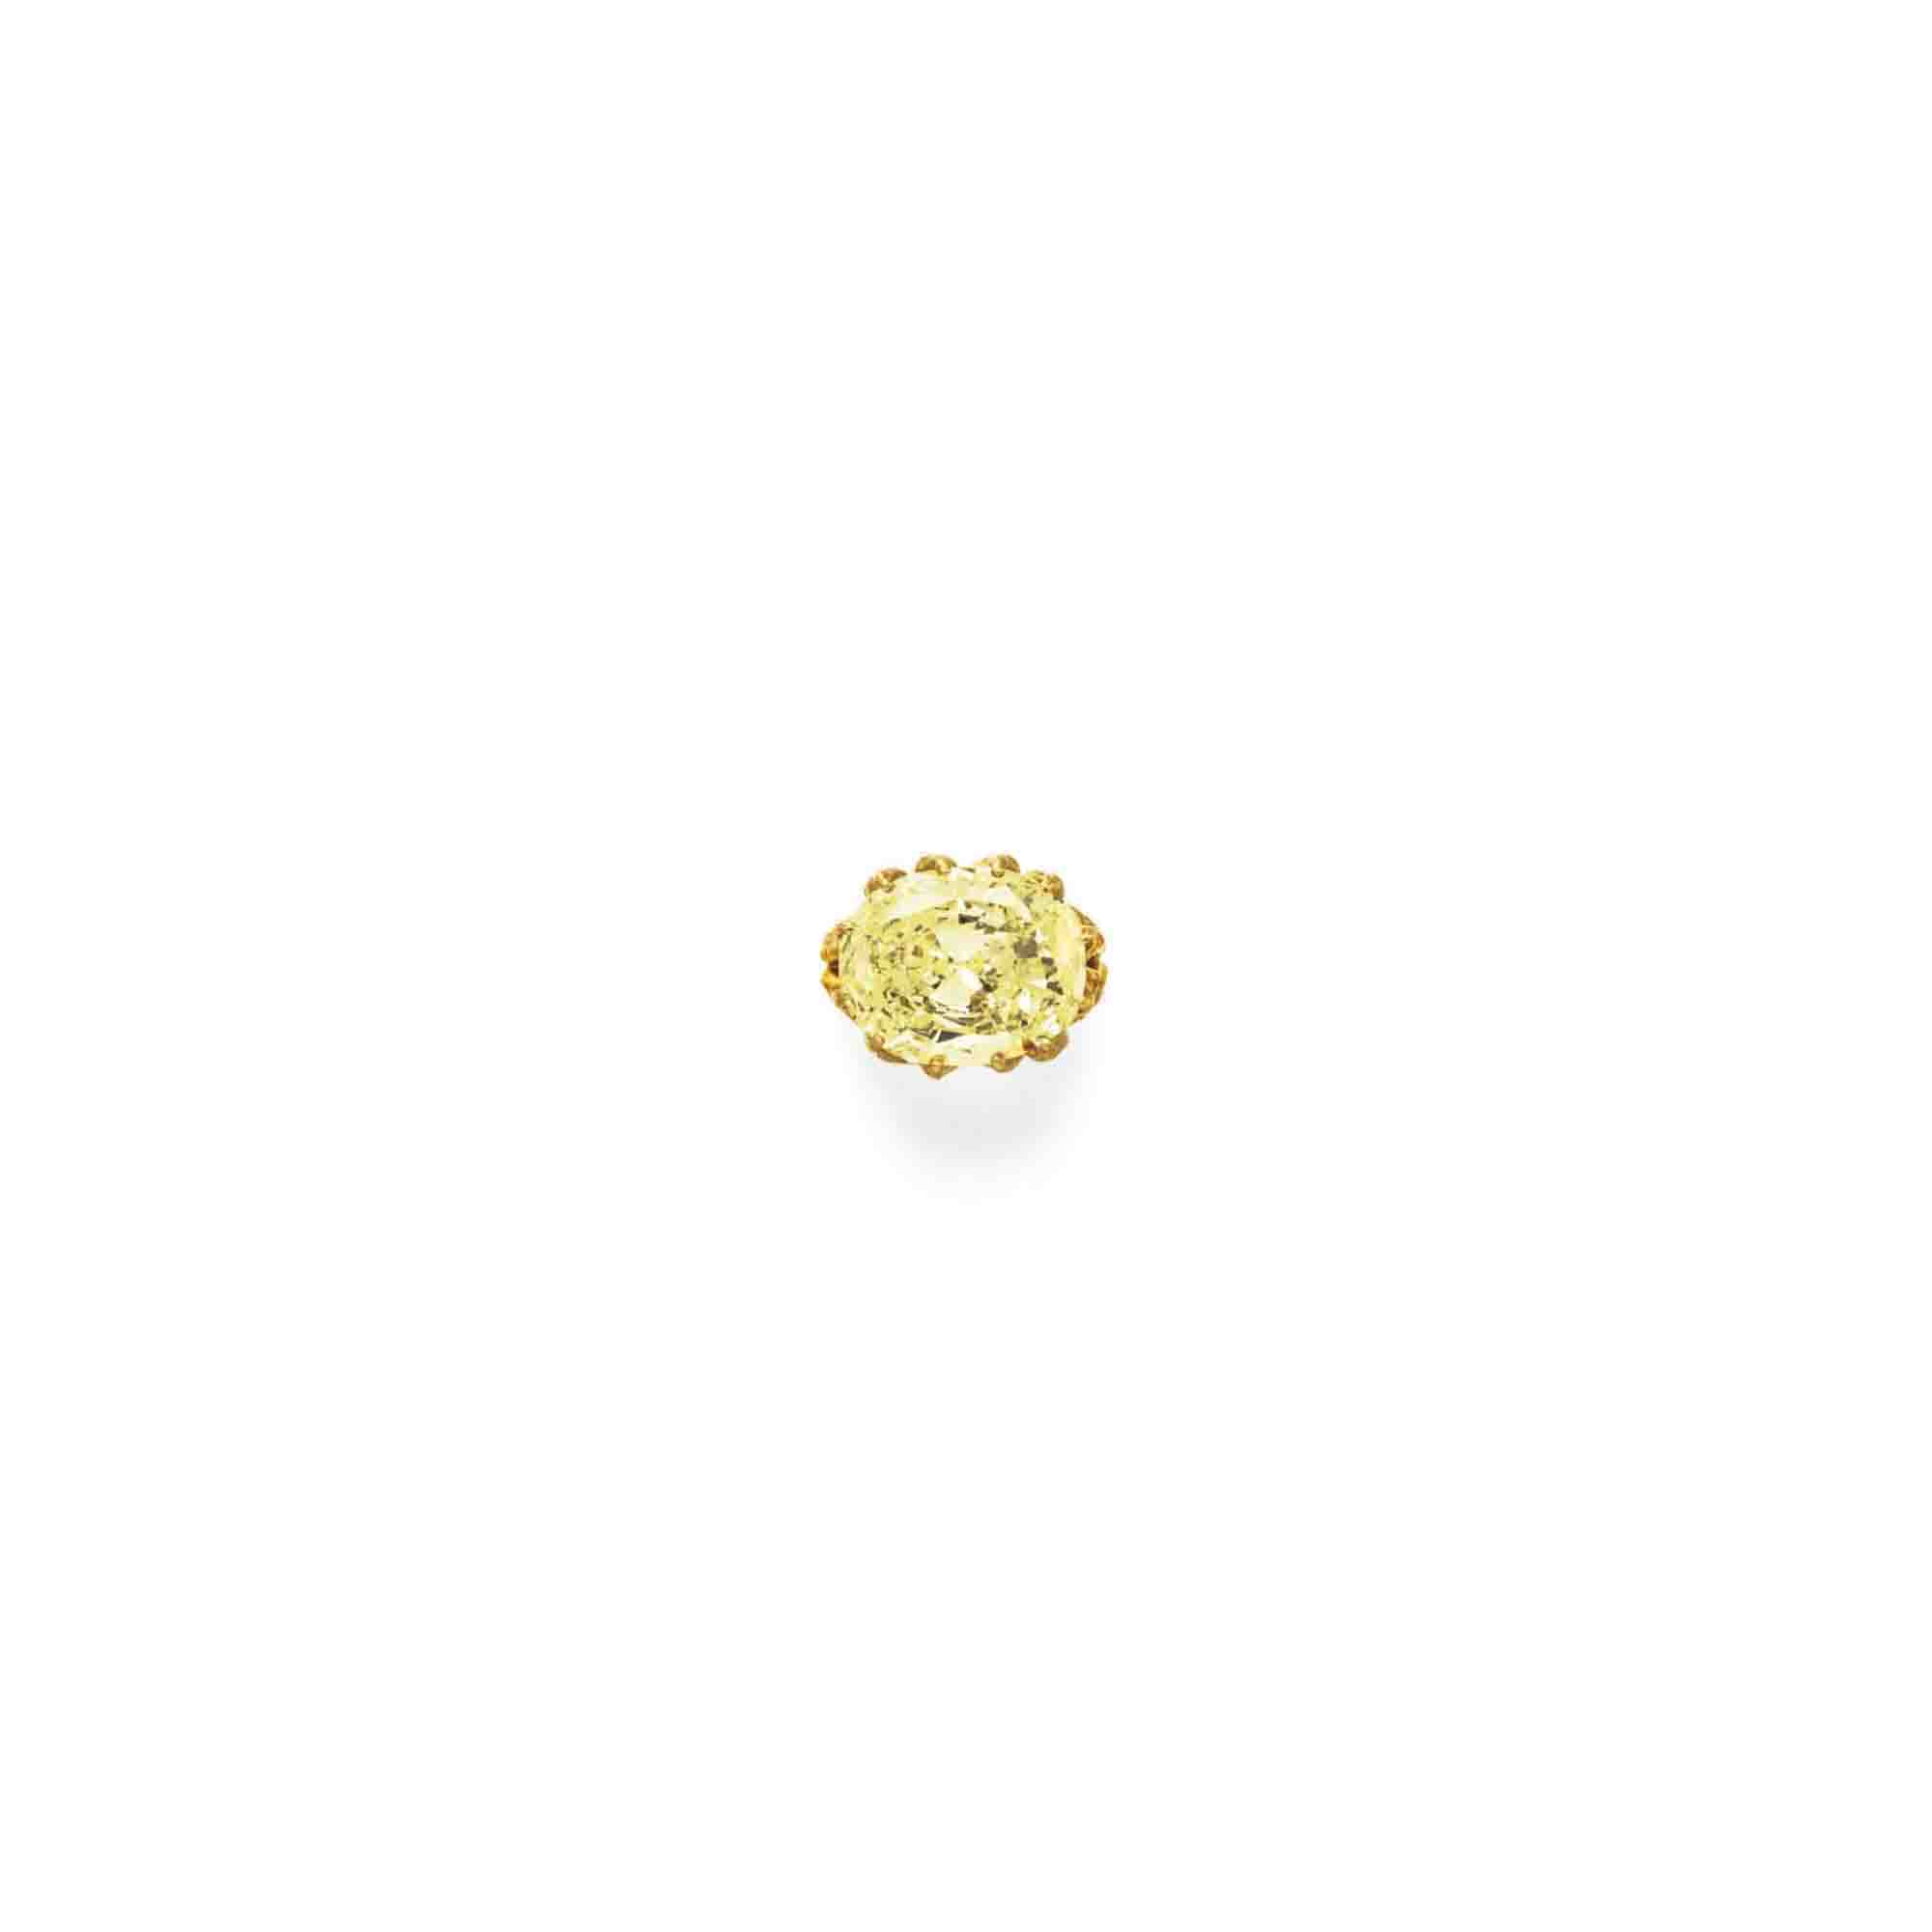 A COLORED DIAMOND RING, BY JULIUS COHEN